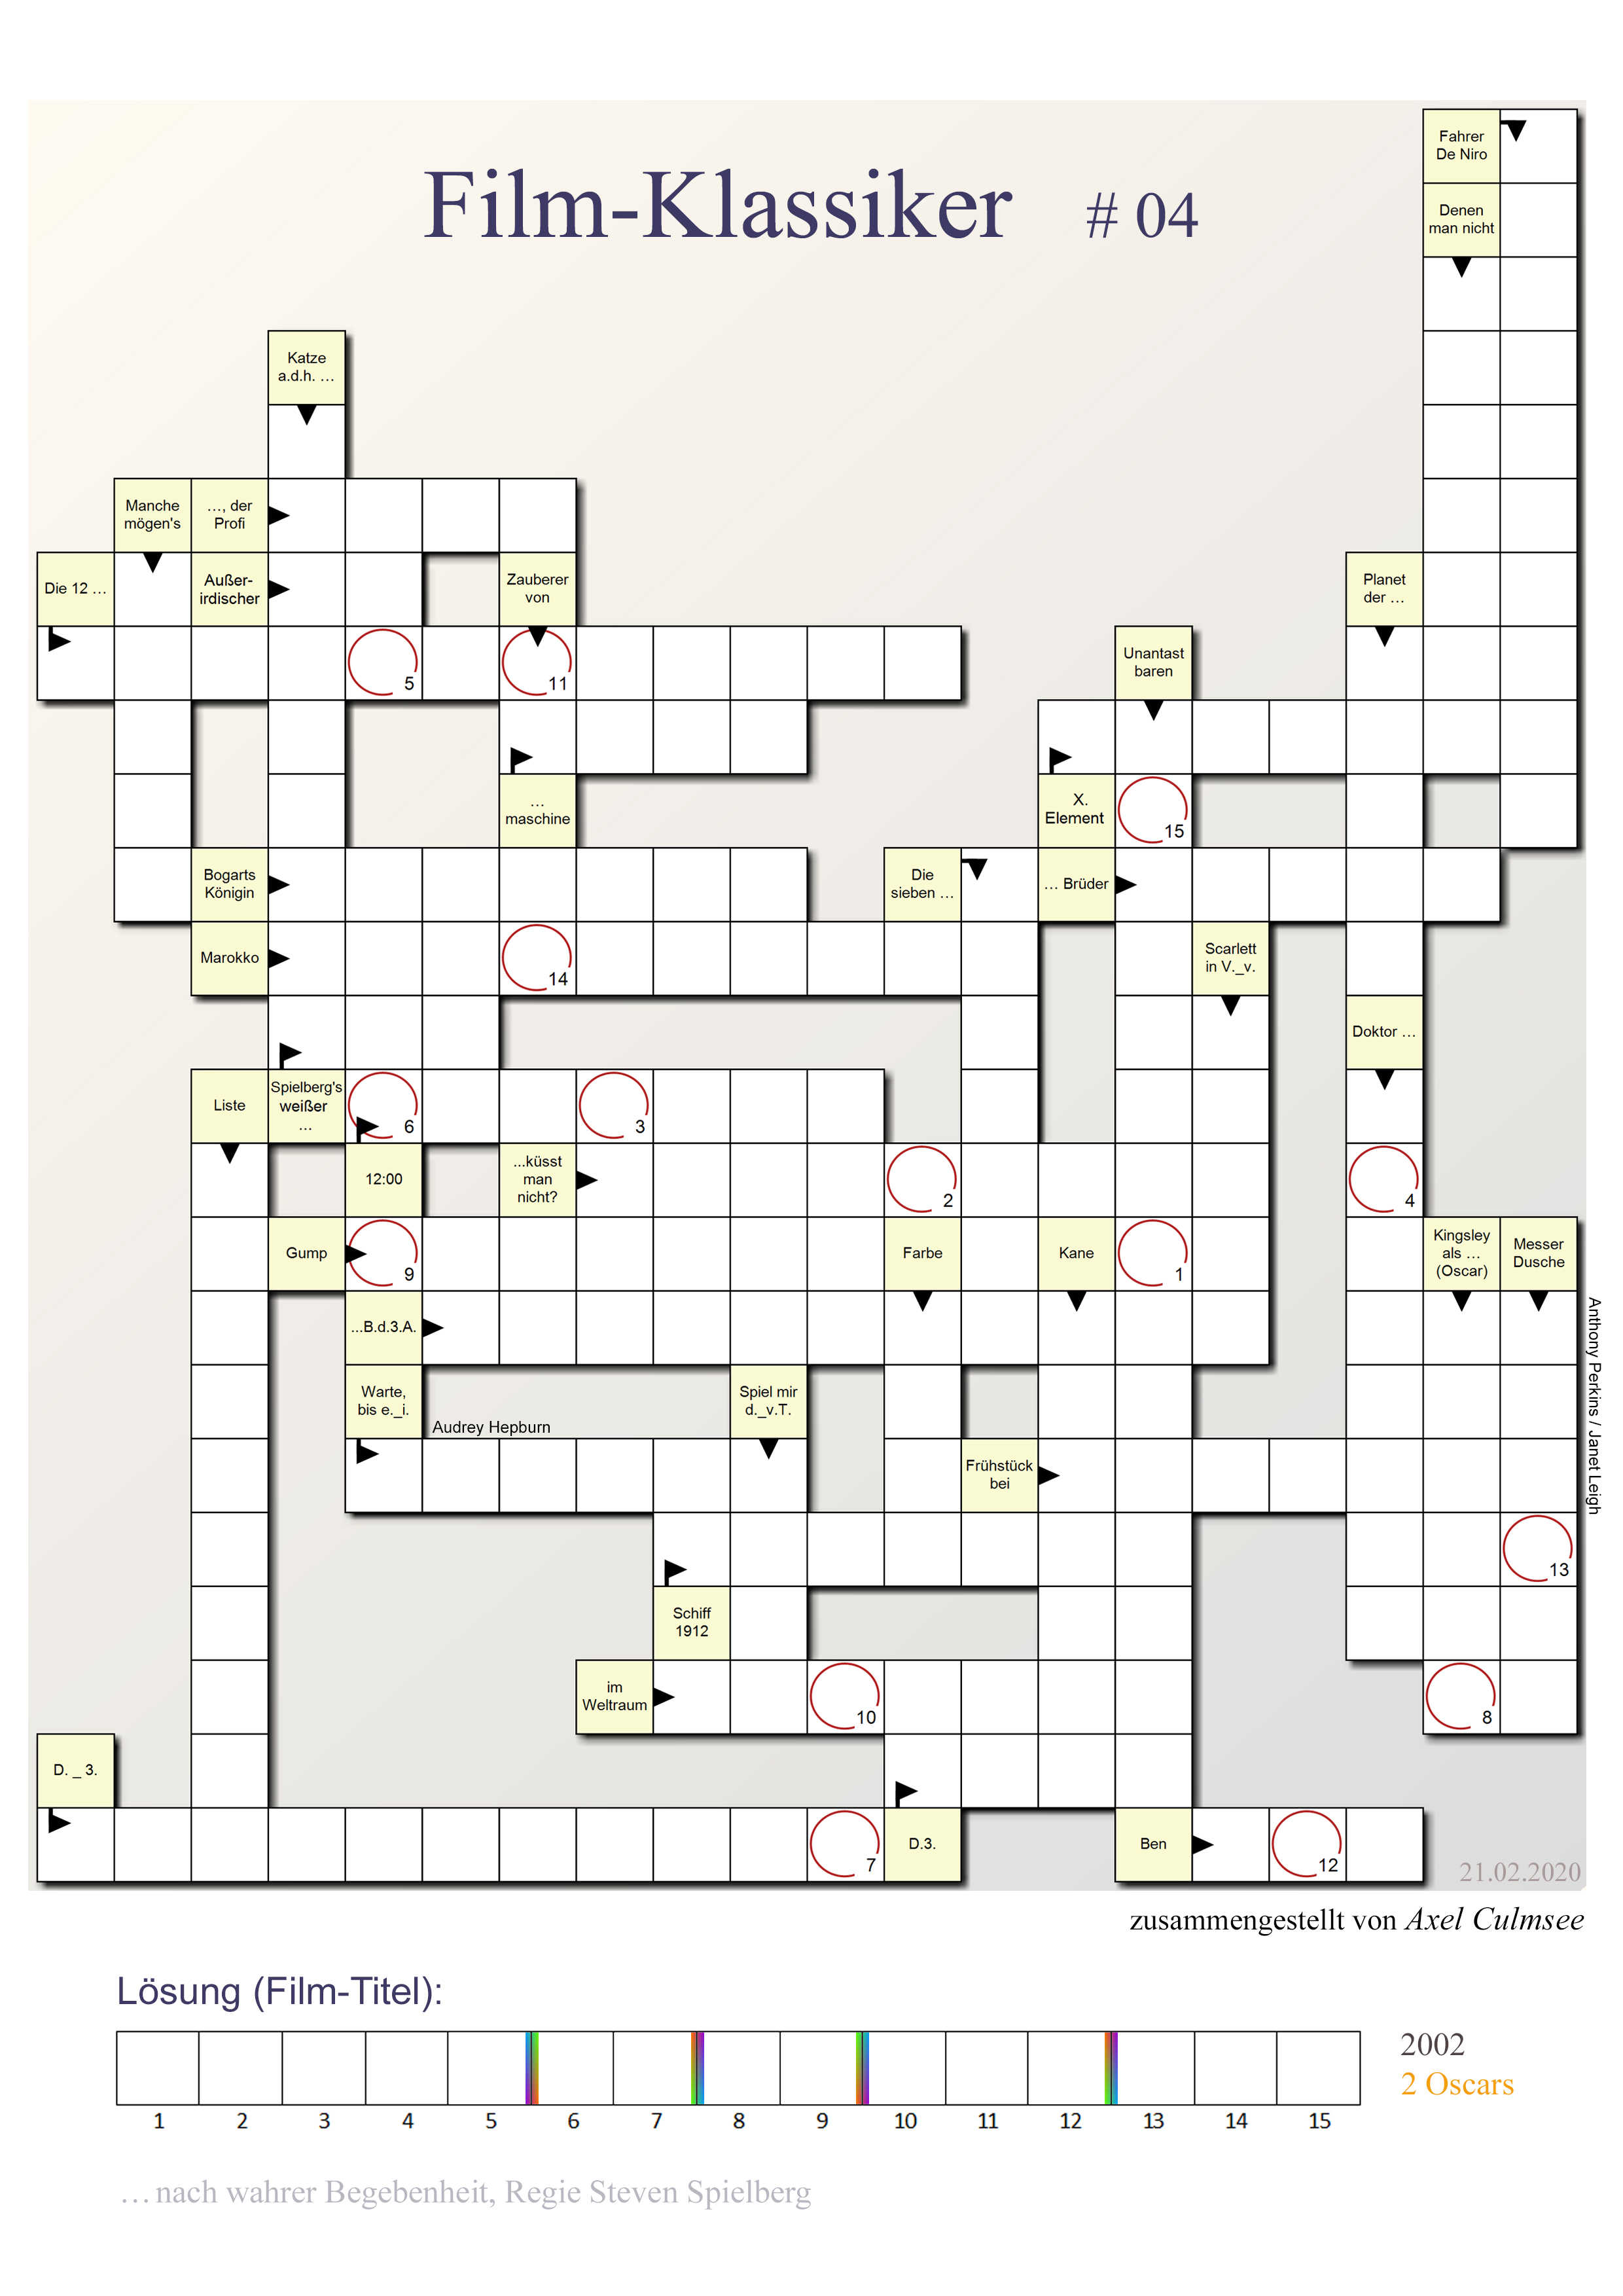 Kriminalfilm-Klassiker crossword puzzle 04